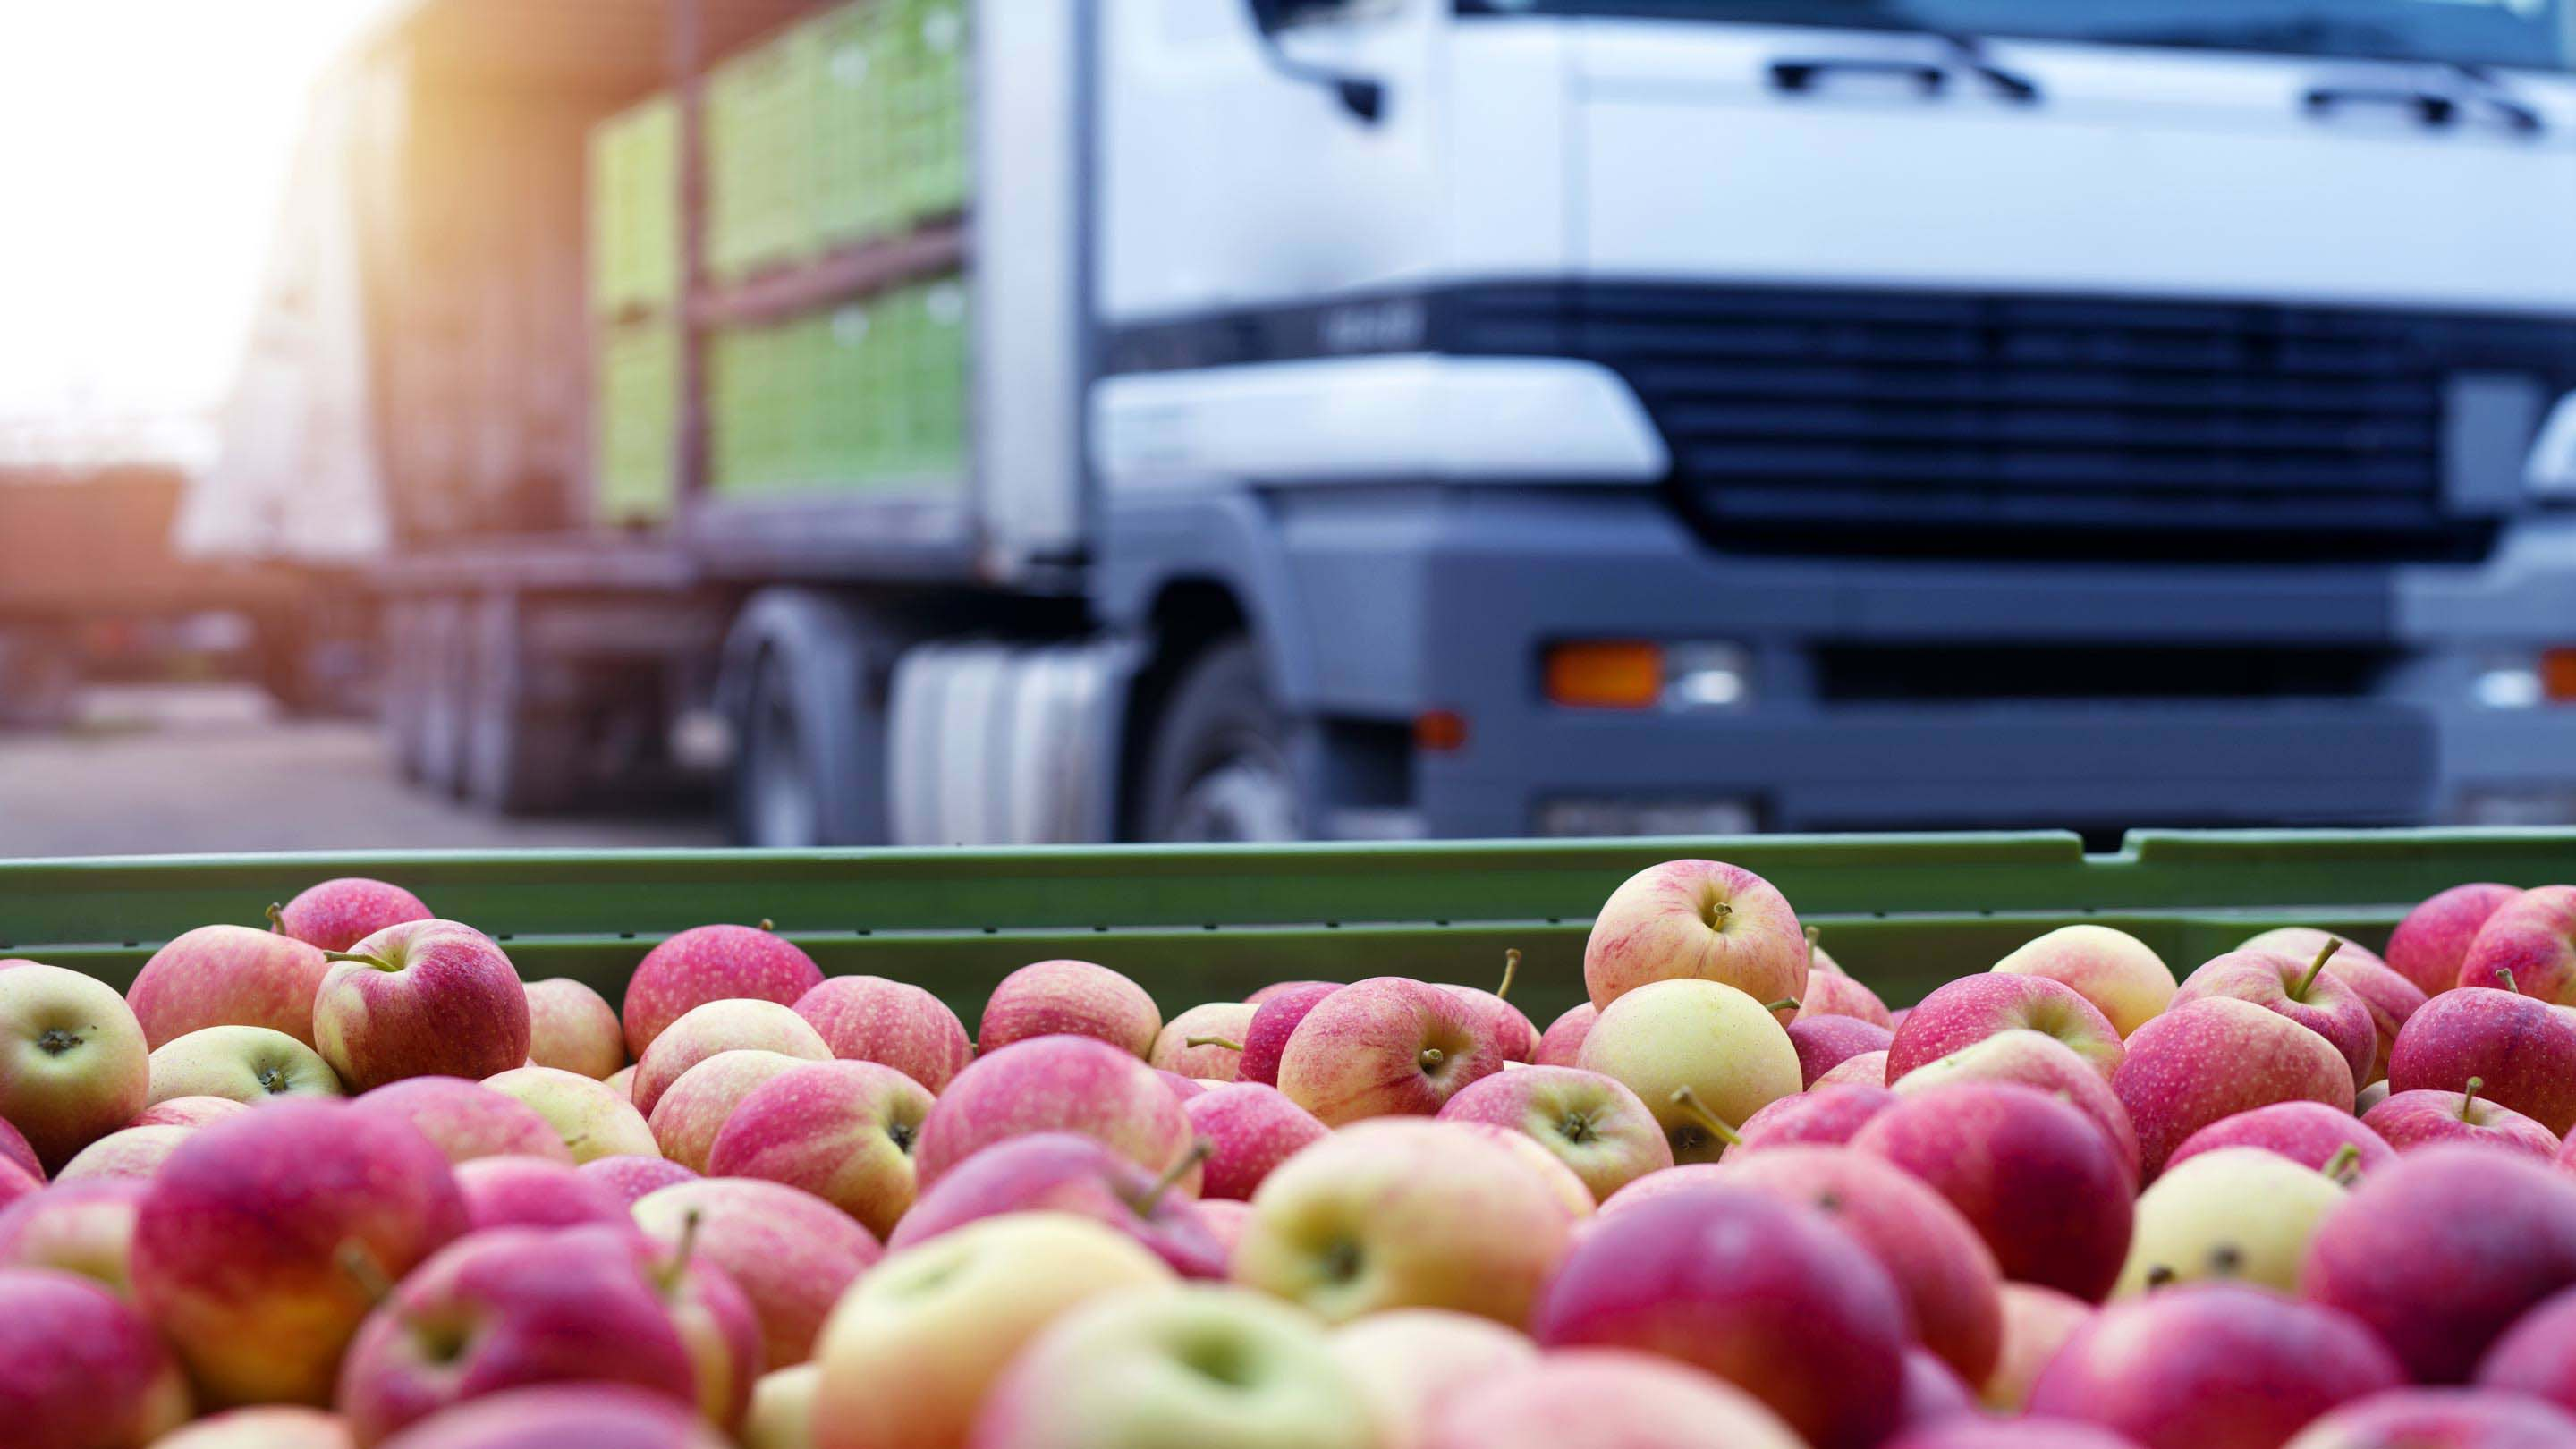 A tray of apples in the foreground with a white food delivery truck in the background